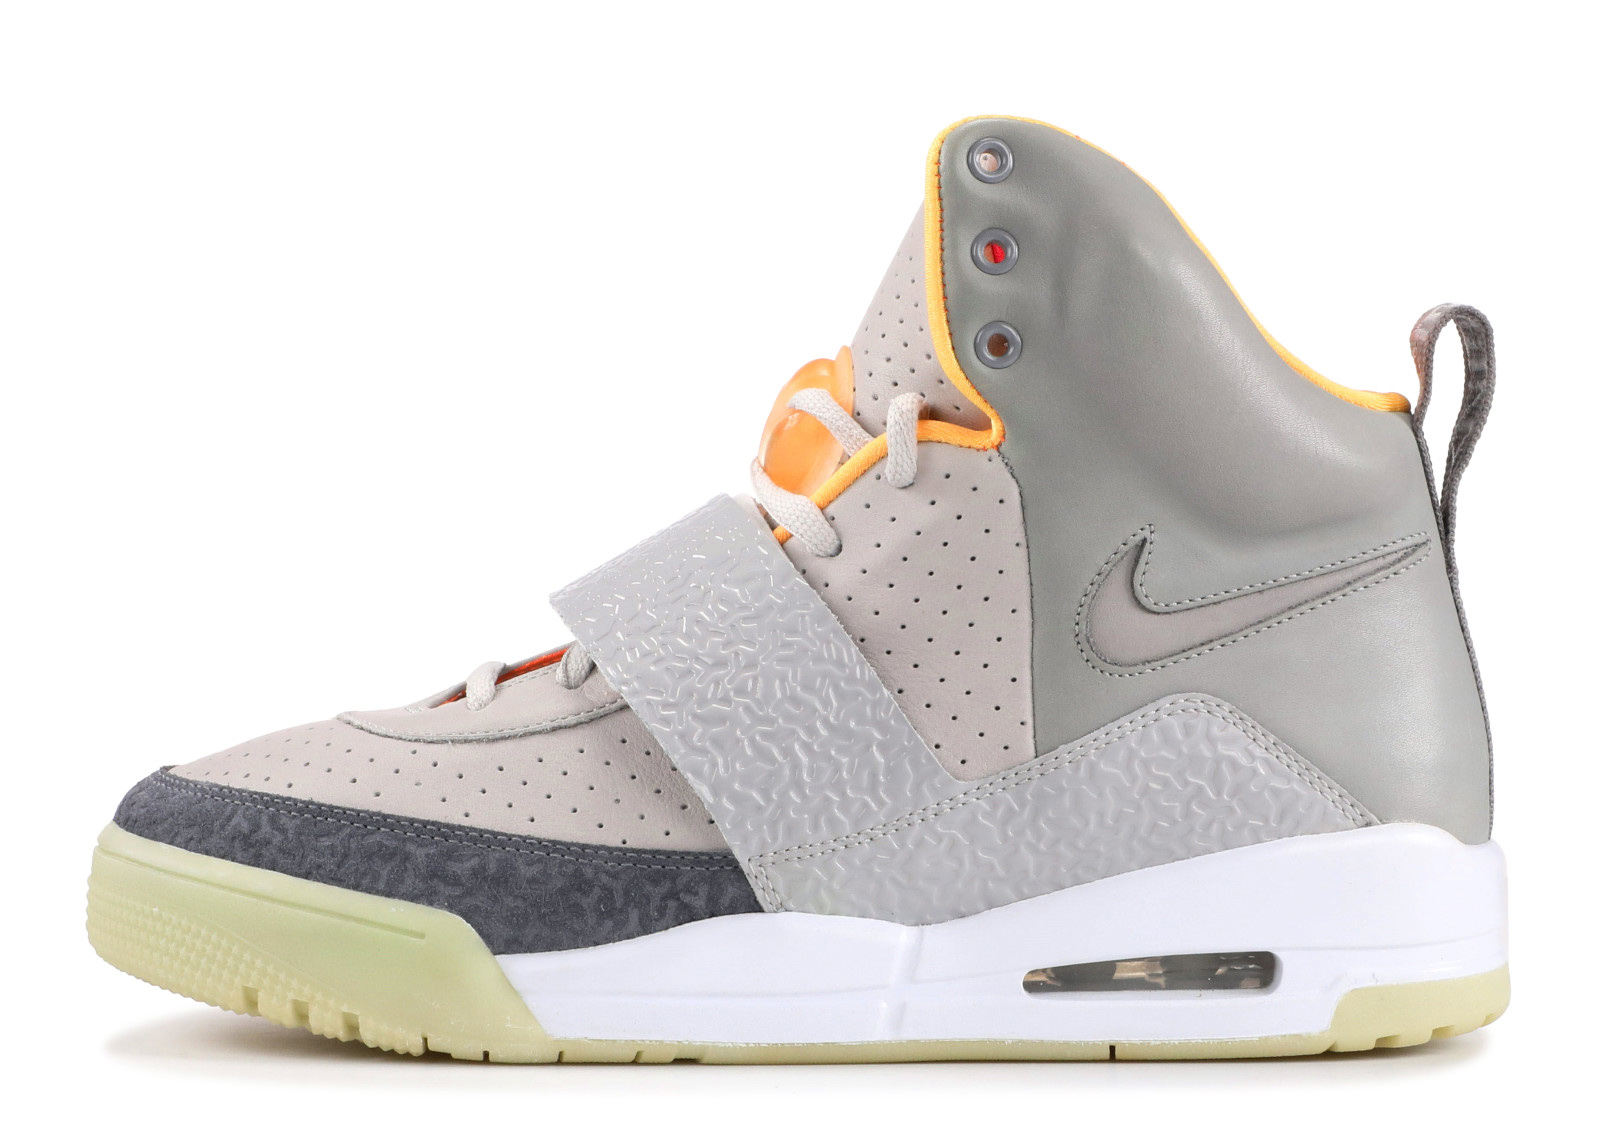 Air Yeezy 1 Zen Grey/Light Charcoal